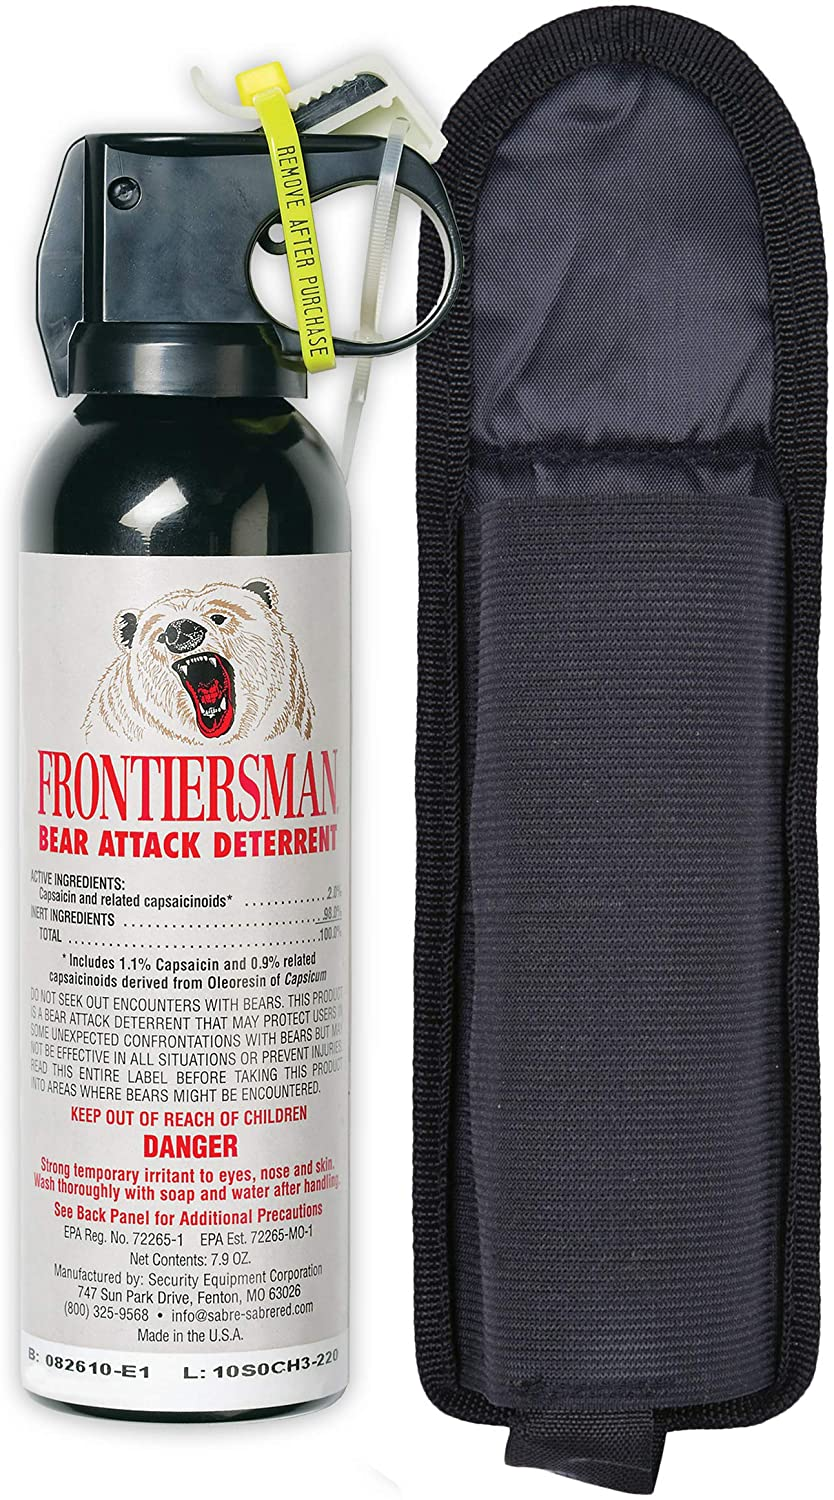 Top 10 Best Bear Sprays For Hiking & Camping In 2020 Reviews 3